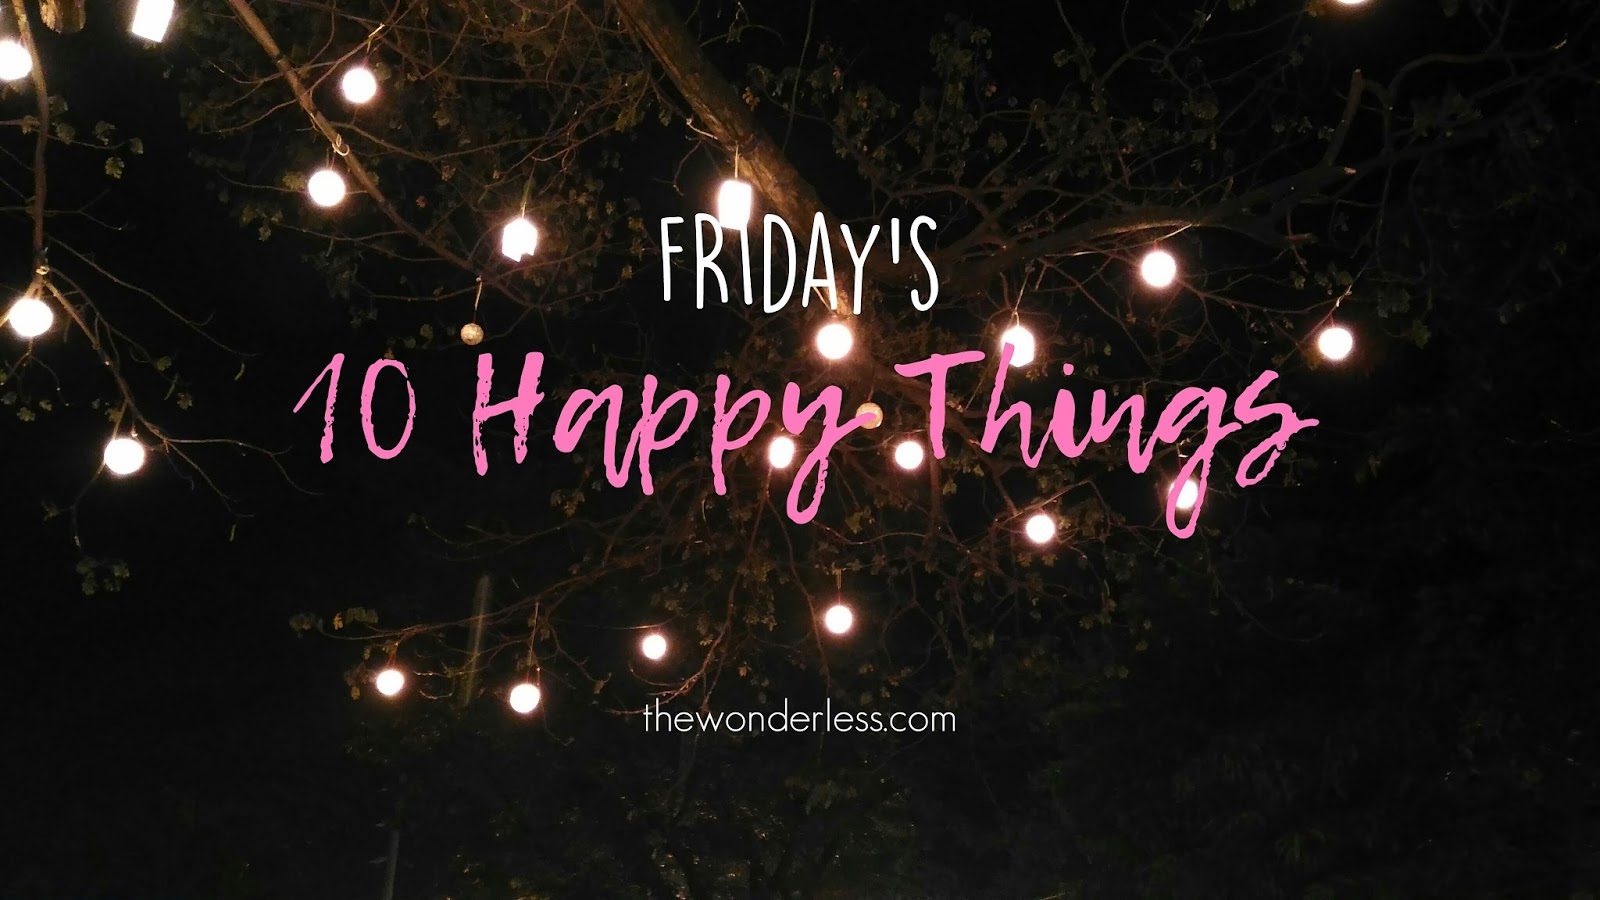 Fridays 10 Happy Things